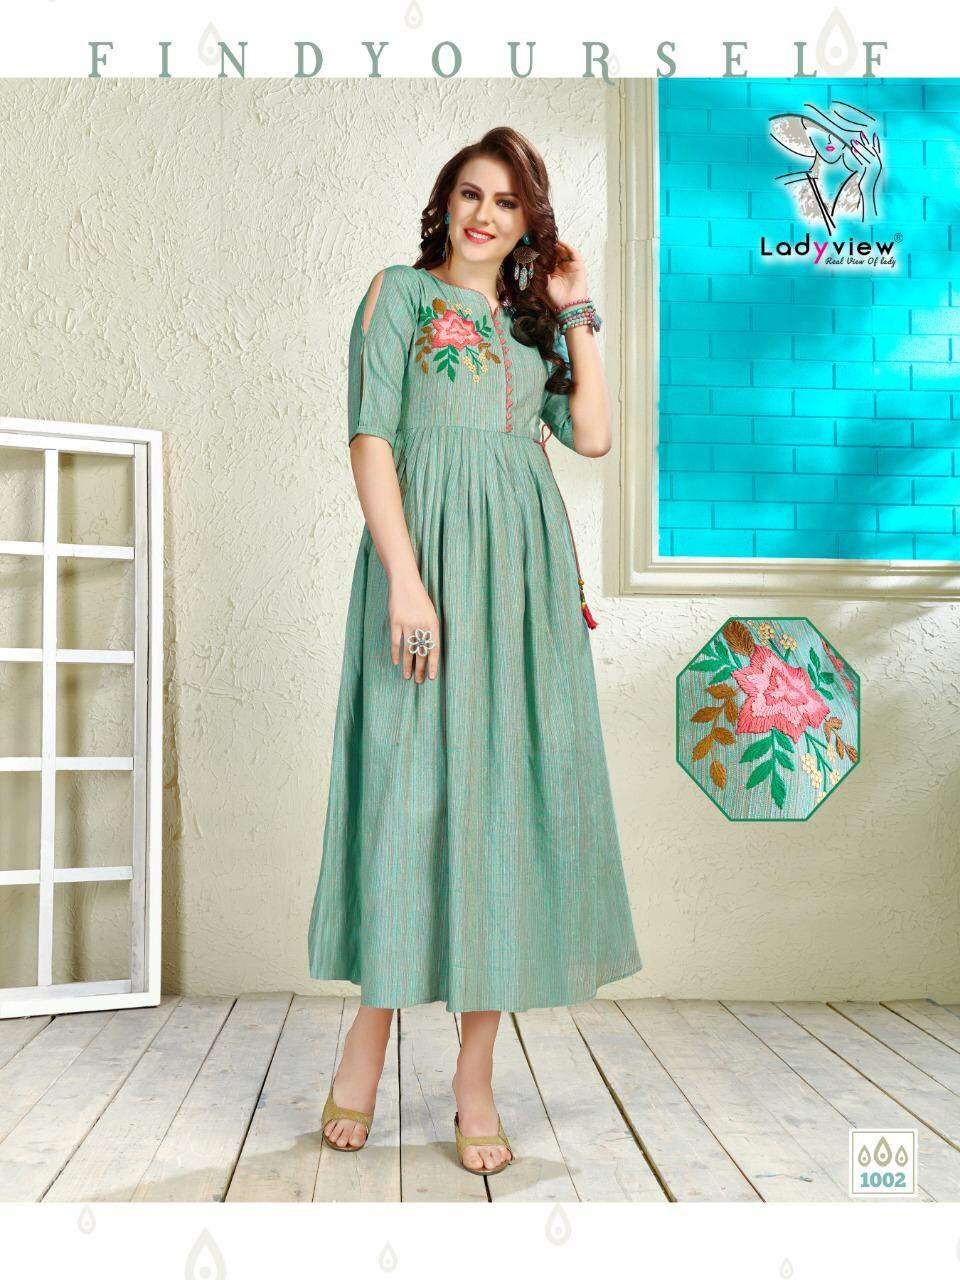 Ladyview Mango Dolly collection 5